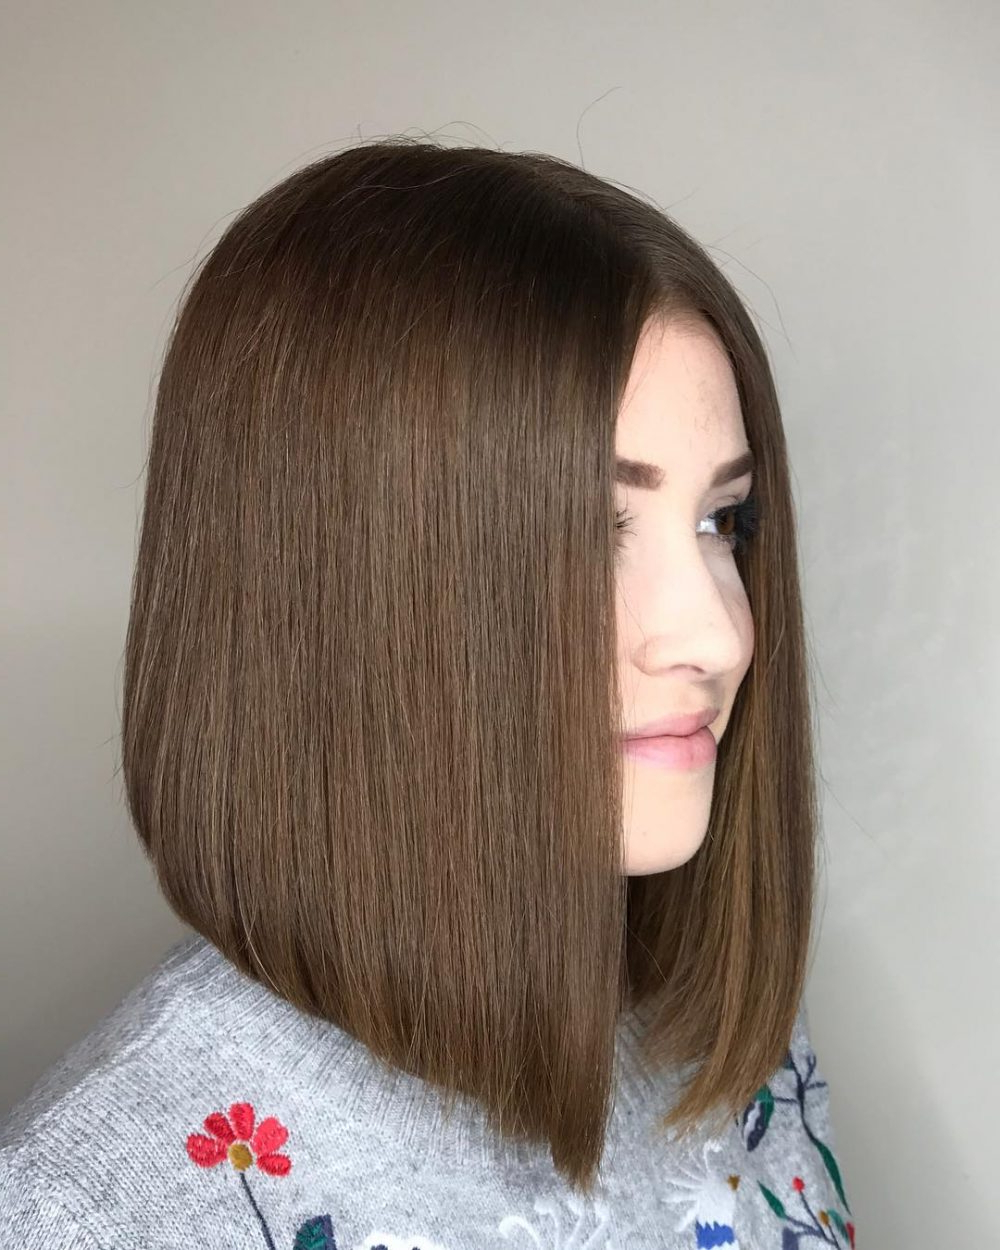 24 Flattering Middle Part Hairstyles In 2019 With Widely Used Long Bob Middle Part Hairstyles (Gallery 4 of 20)